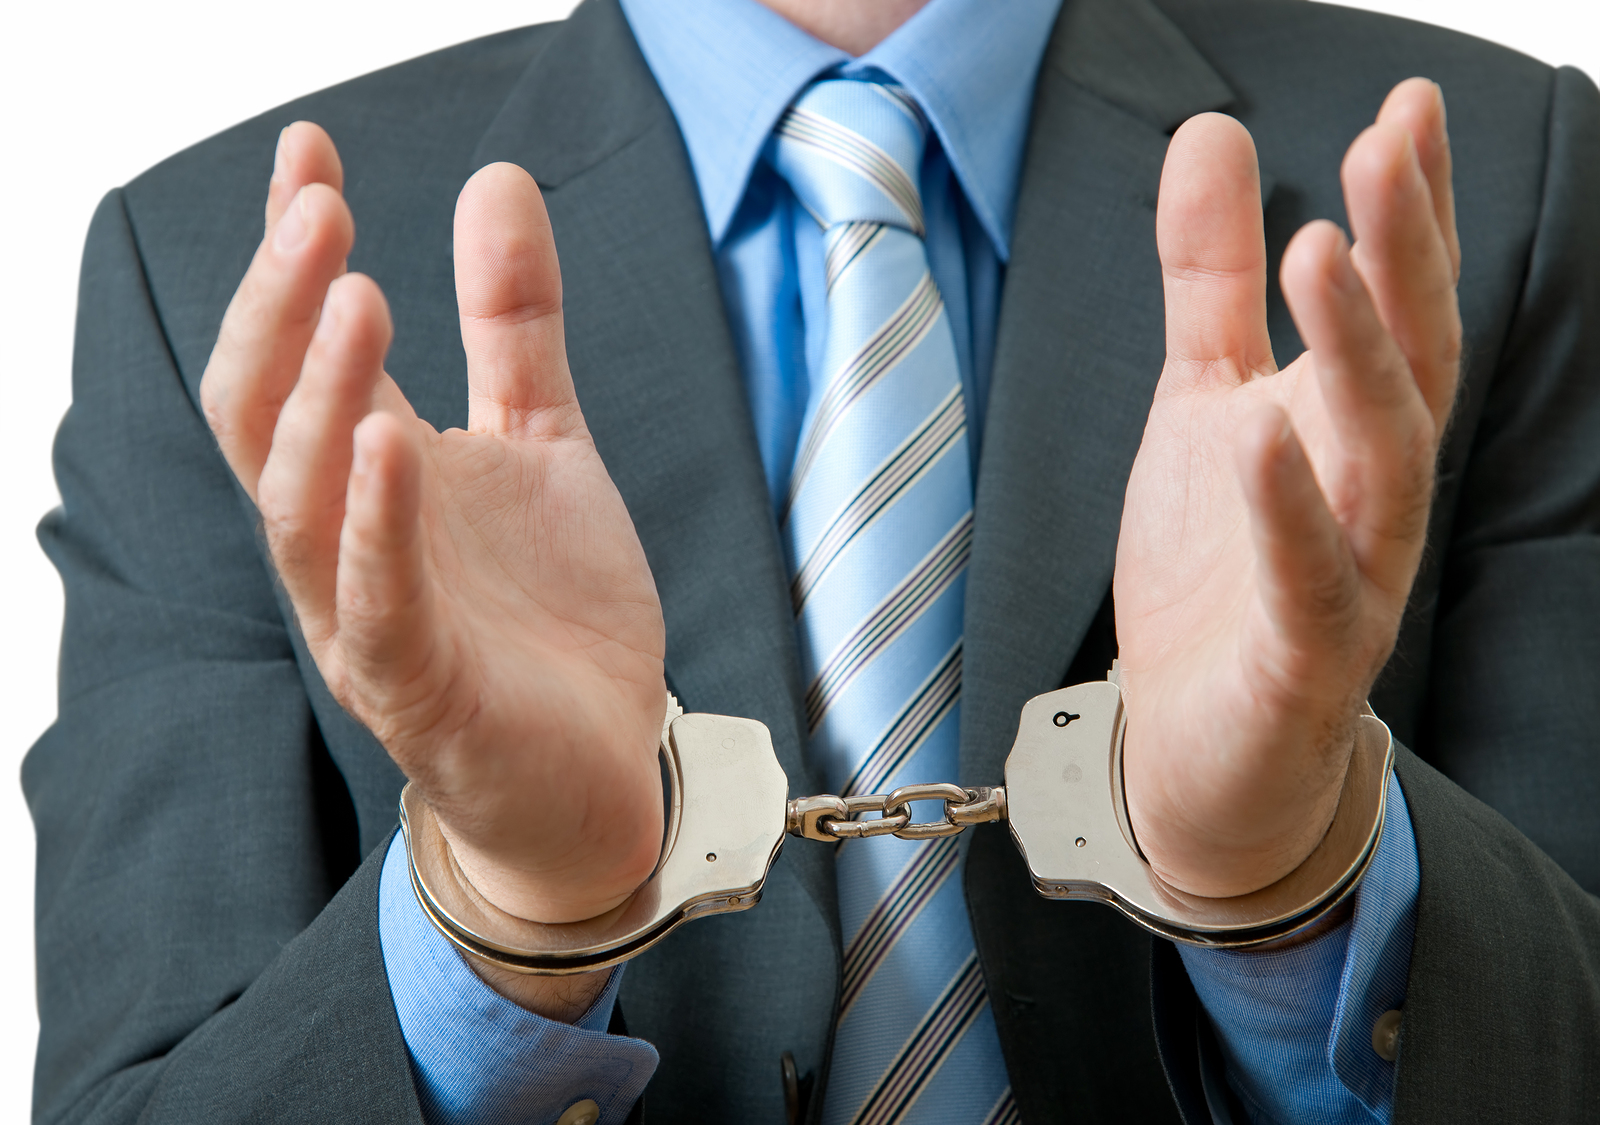 A customer service employee with hands in handcuffs to signify that he is unable to do anything to help customers.